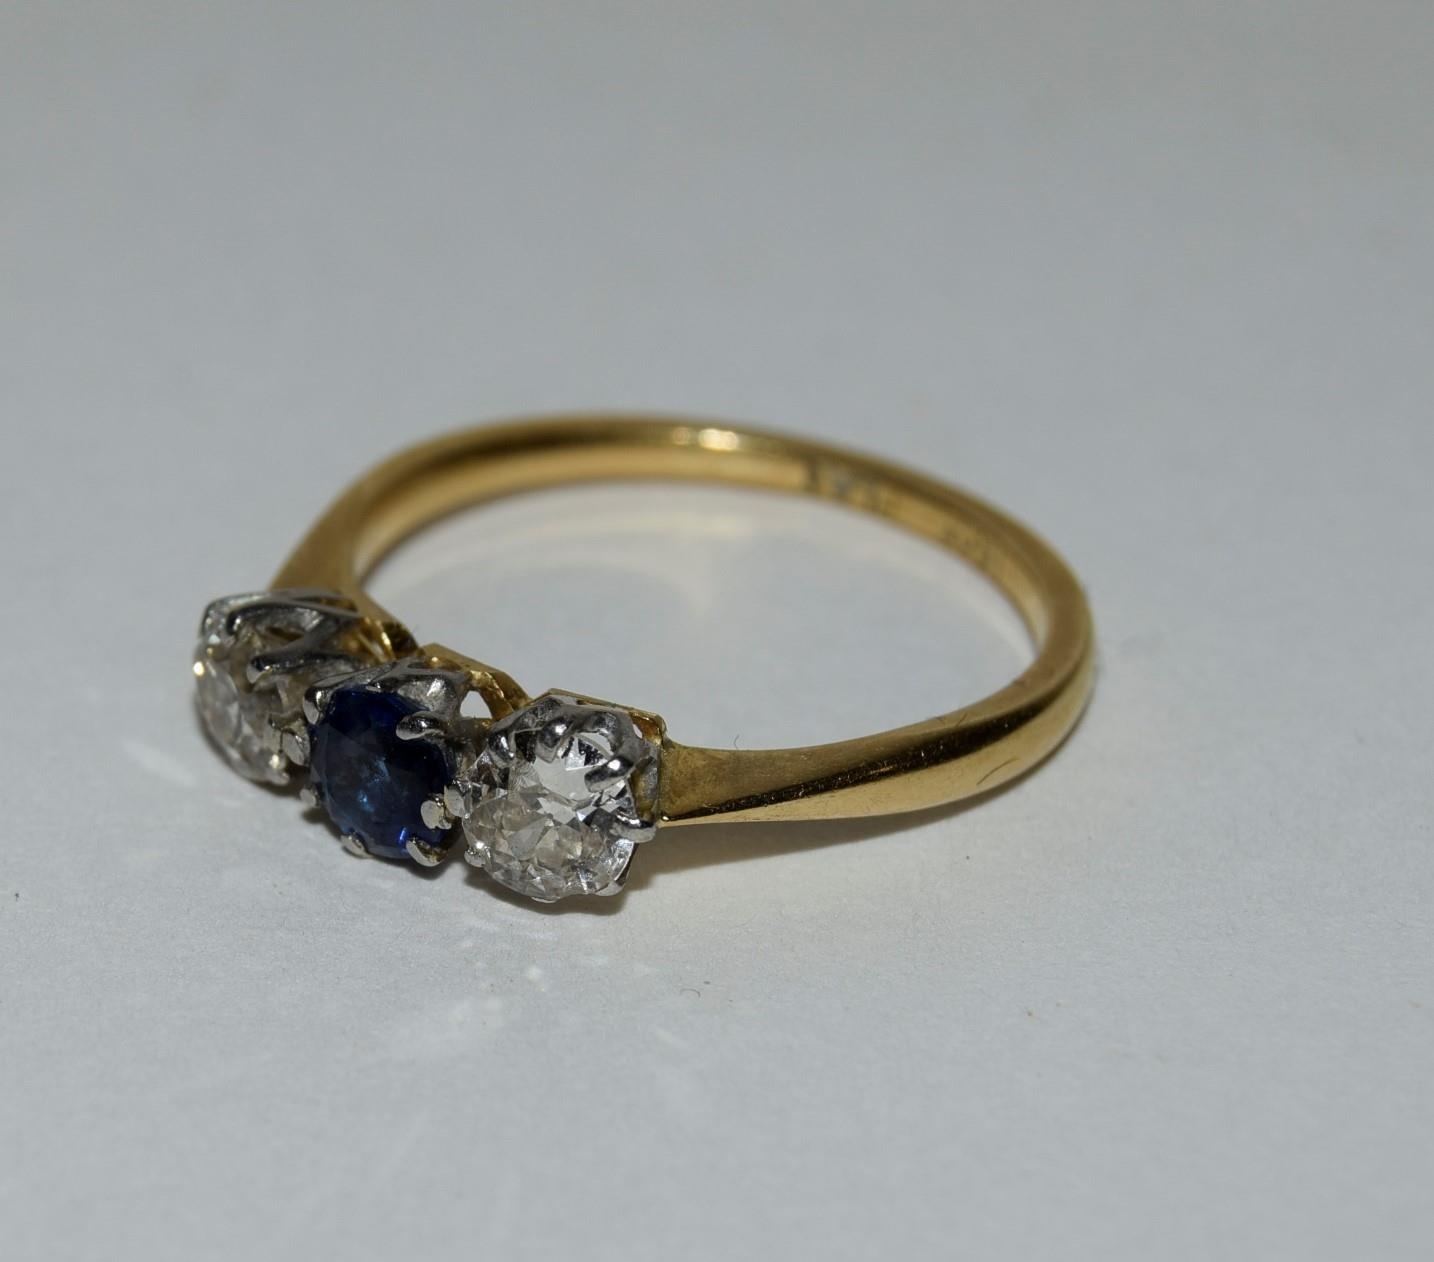 18ct gold and platinum ladies diamond and sapphire 3 stone ring approx 0.5ct diamond size L - Image 4 of 6